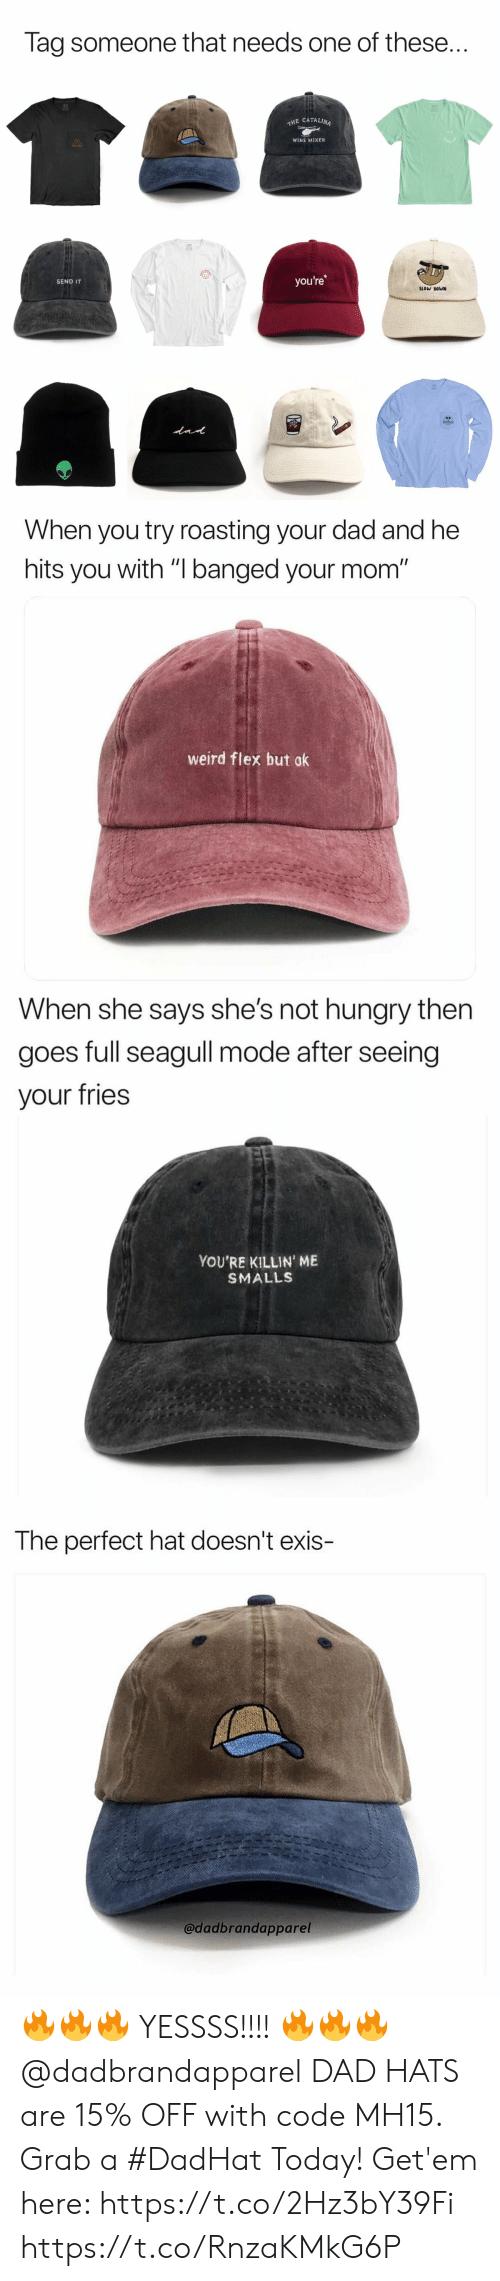 """catalina wine mixer: Tag someone that needs one of these..  E CATALINA  WINE MIXER  you're  SEND IT  SLOW DOWN   When you try roasting your dad and he  hits you with """"I banged your mom""""  weird flex but ok   When she says she's not nungry tnen  goes full seagull mode after seeing  your fries  YOU'RE KILLIN' ME  SMALLS   The perfect hat doesn't exis-  @dadbrandapparel 🔥🔥🔥 YESSSS!!!! 🔥🔥🔥 @dadbrandapparel DAD HATS are 15% OFF with code MH15. Grab a #DadHat Today! Get'em here: https://t.co/2Hz3bY39Fi https://t.co/RnzaKMkG6P"""